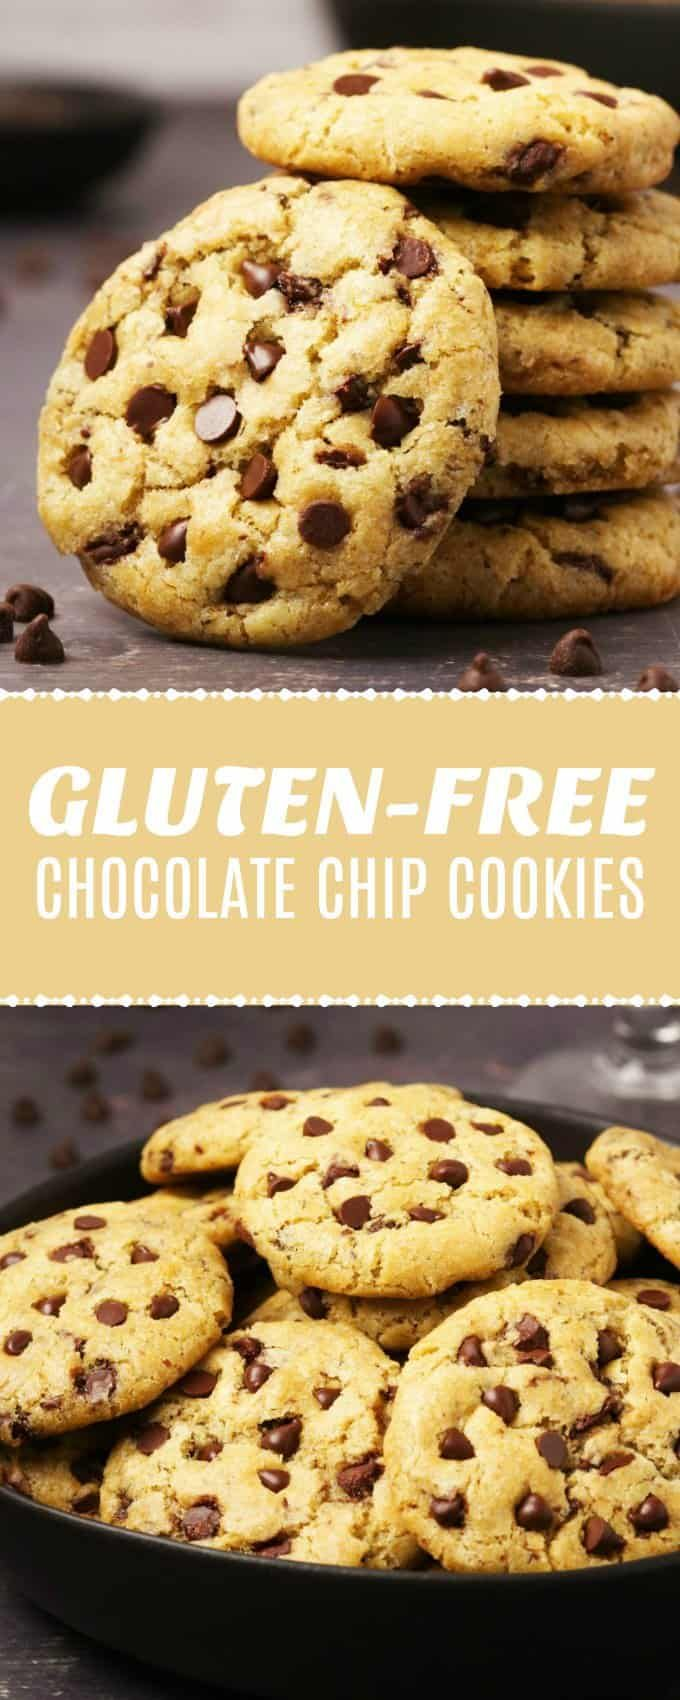 These Vegan Gluten Free Chocolate Chip Cookies Are So Good No One Will Ever Guess The Gluten Free Chocolate Chip Cookies Vegan Cookies Vegan Christmas Desserts